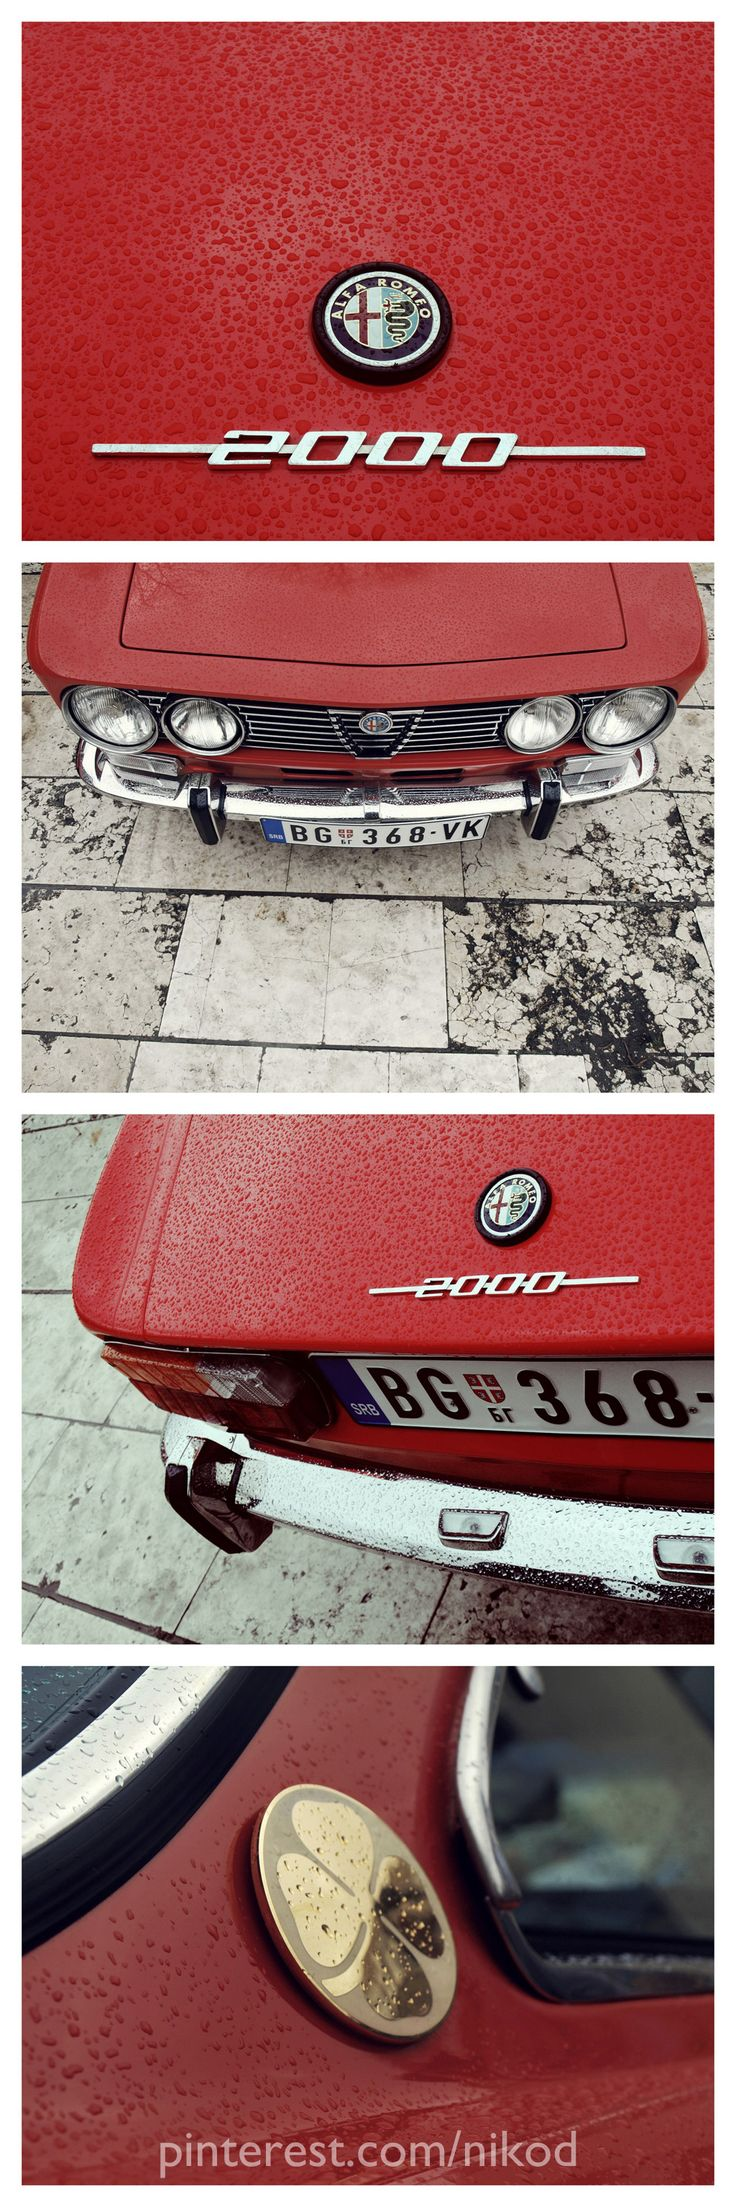 Alfa Romeo GTV 2000 Photos by: pinterest.com/nikod